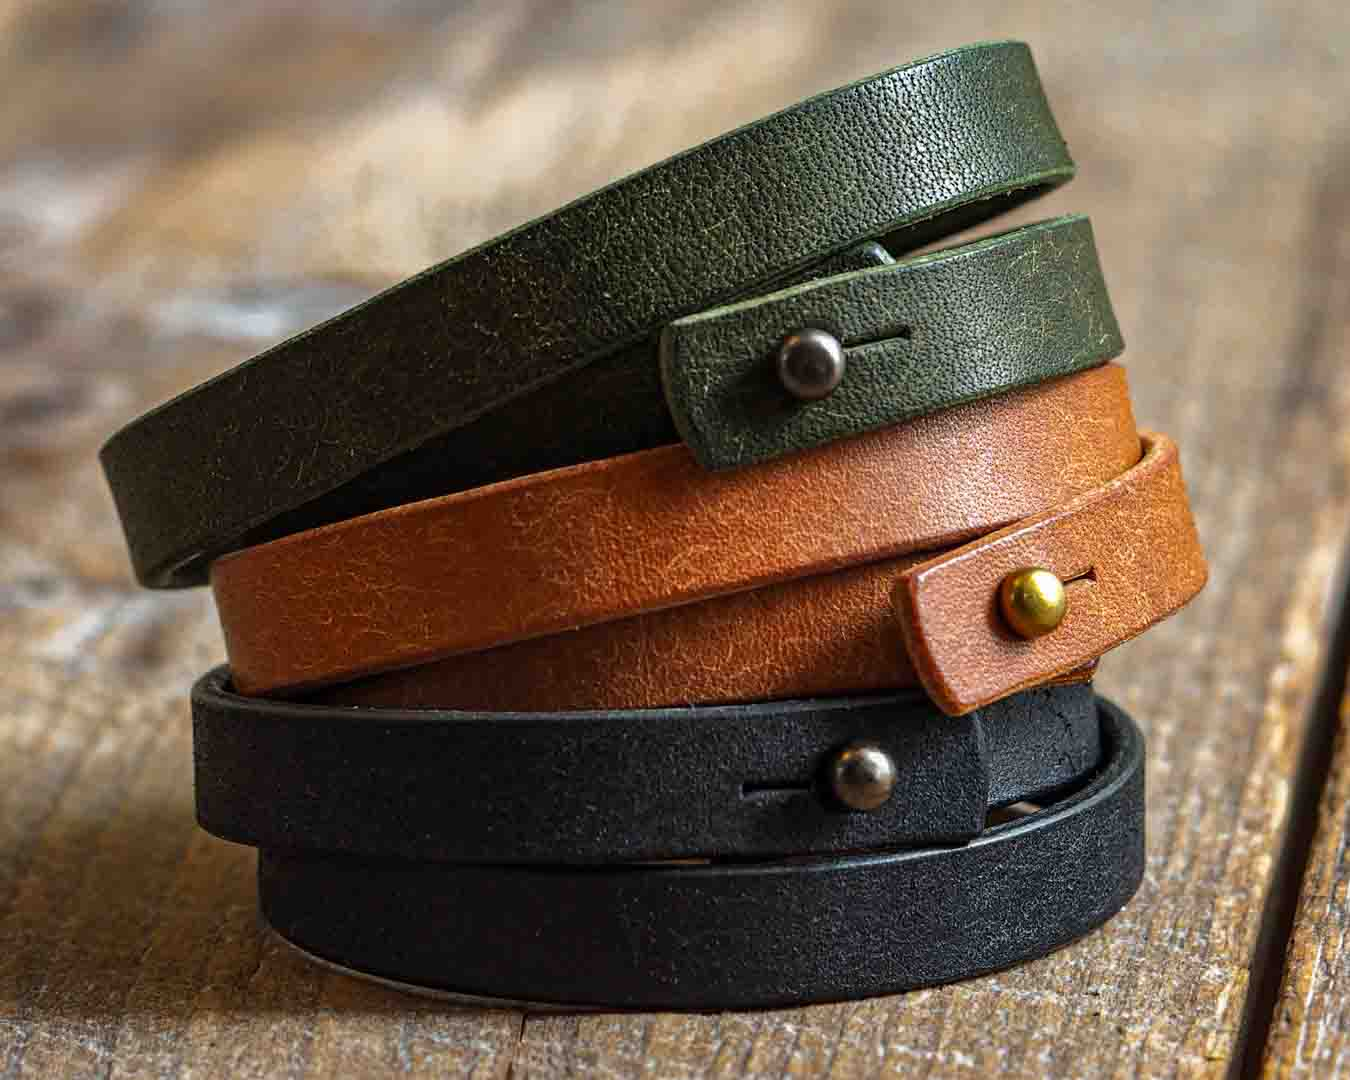 This product is Luava leather double wrist band badalassi carlo pueblo cognac olive black with a small article of how I crafted this product including tools, stages of the process and materials I used.